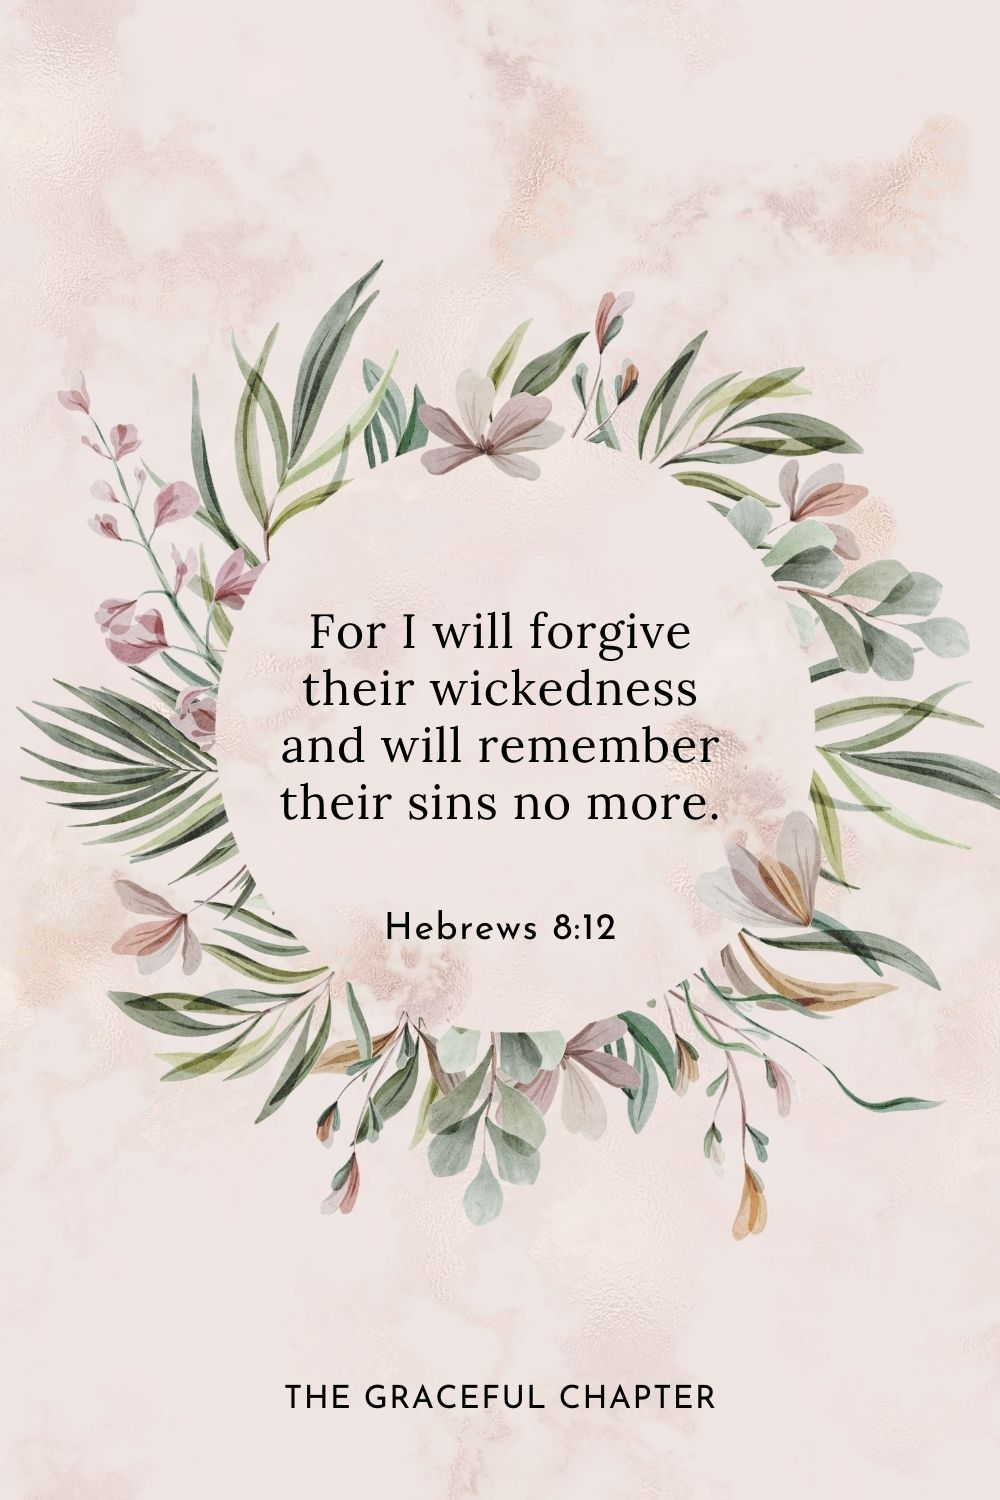 For I will forgive their wickedness and will remember their sins no more.